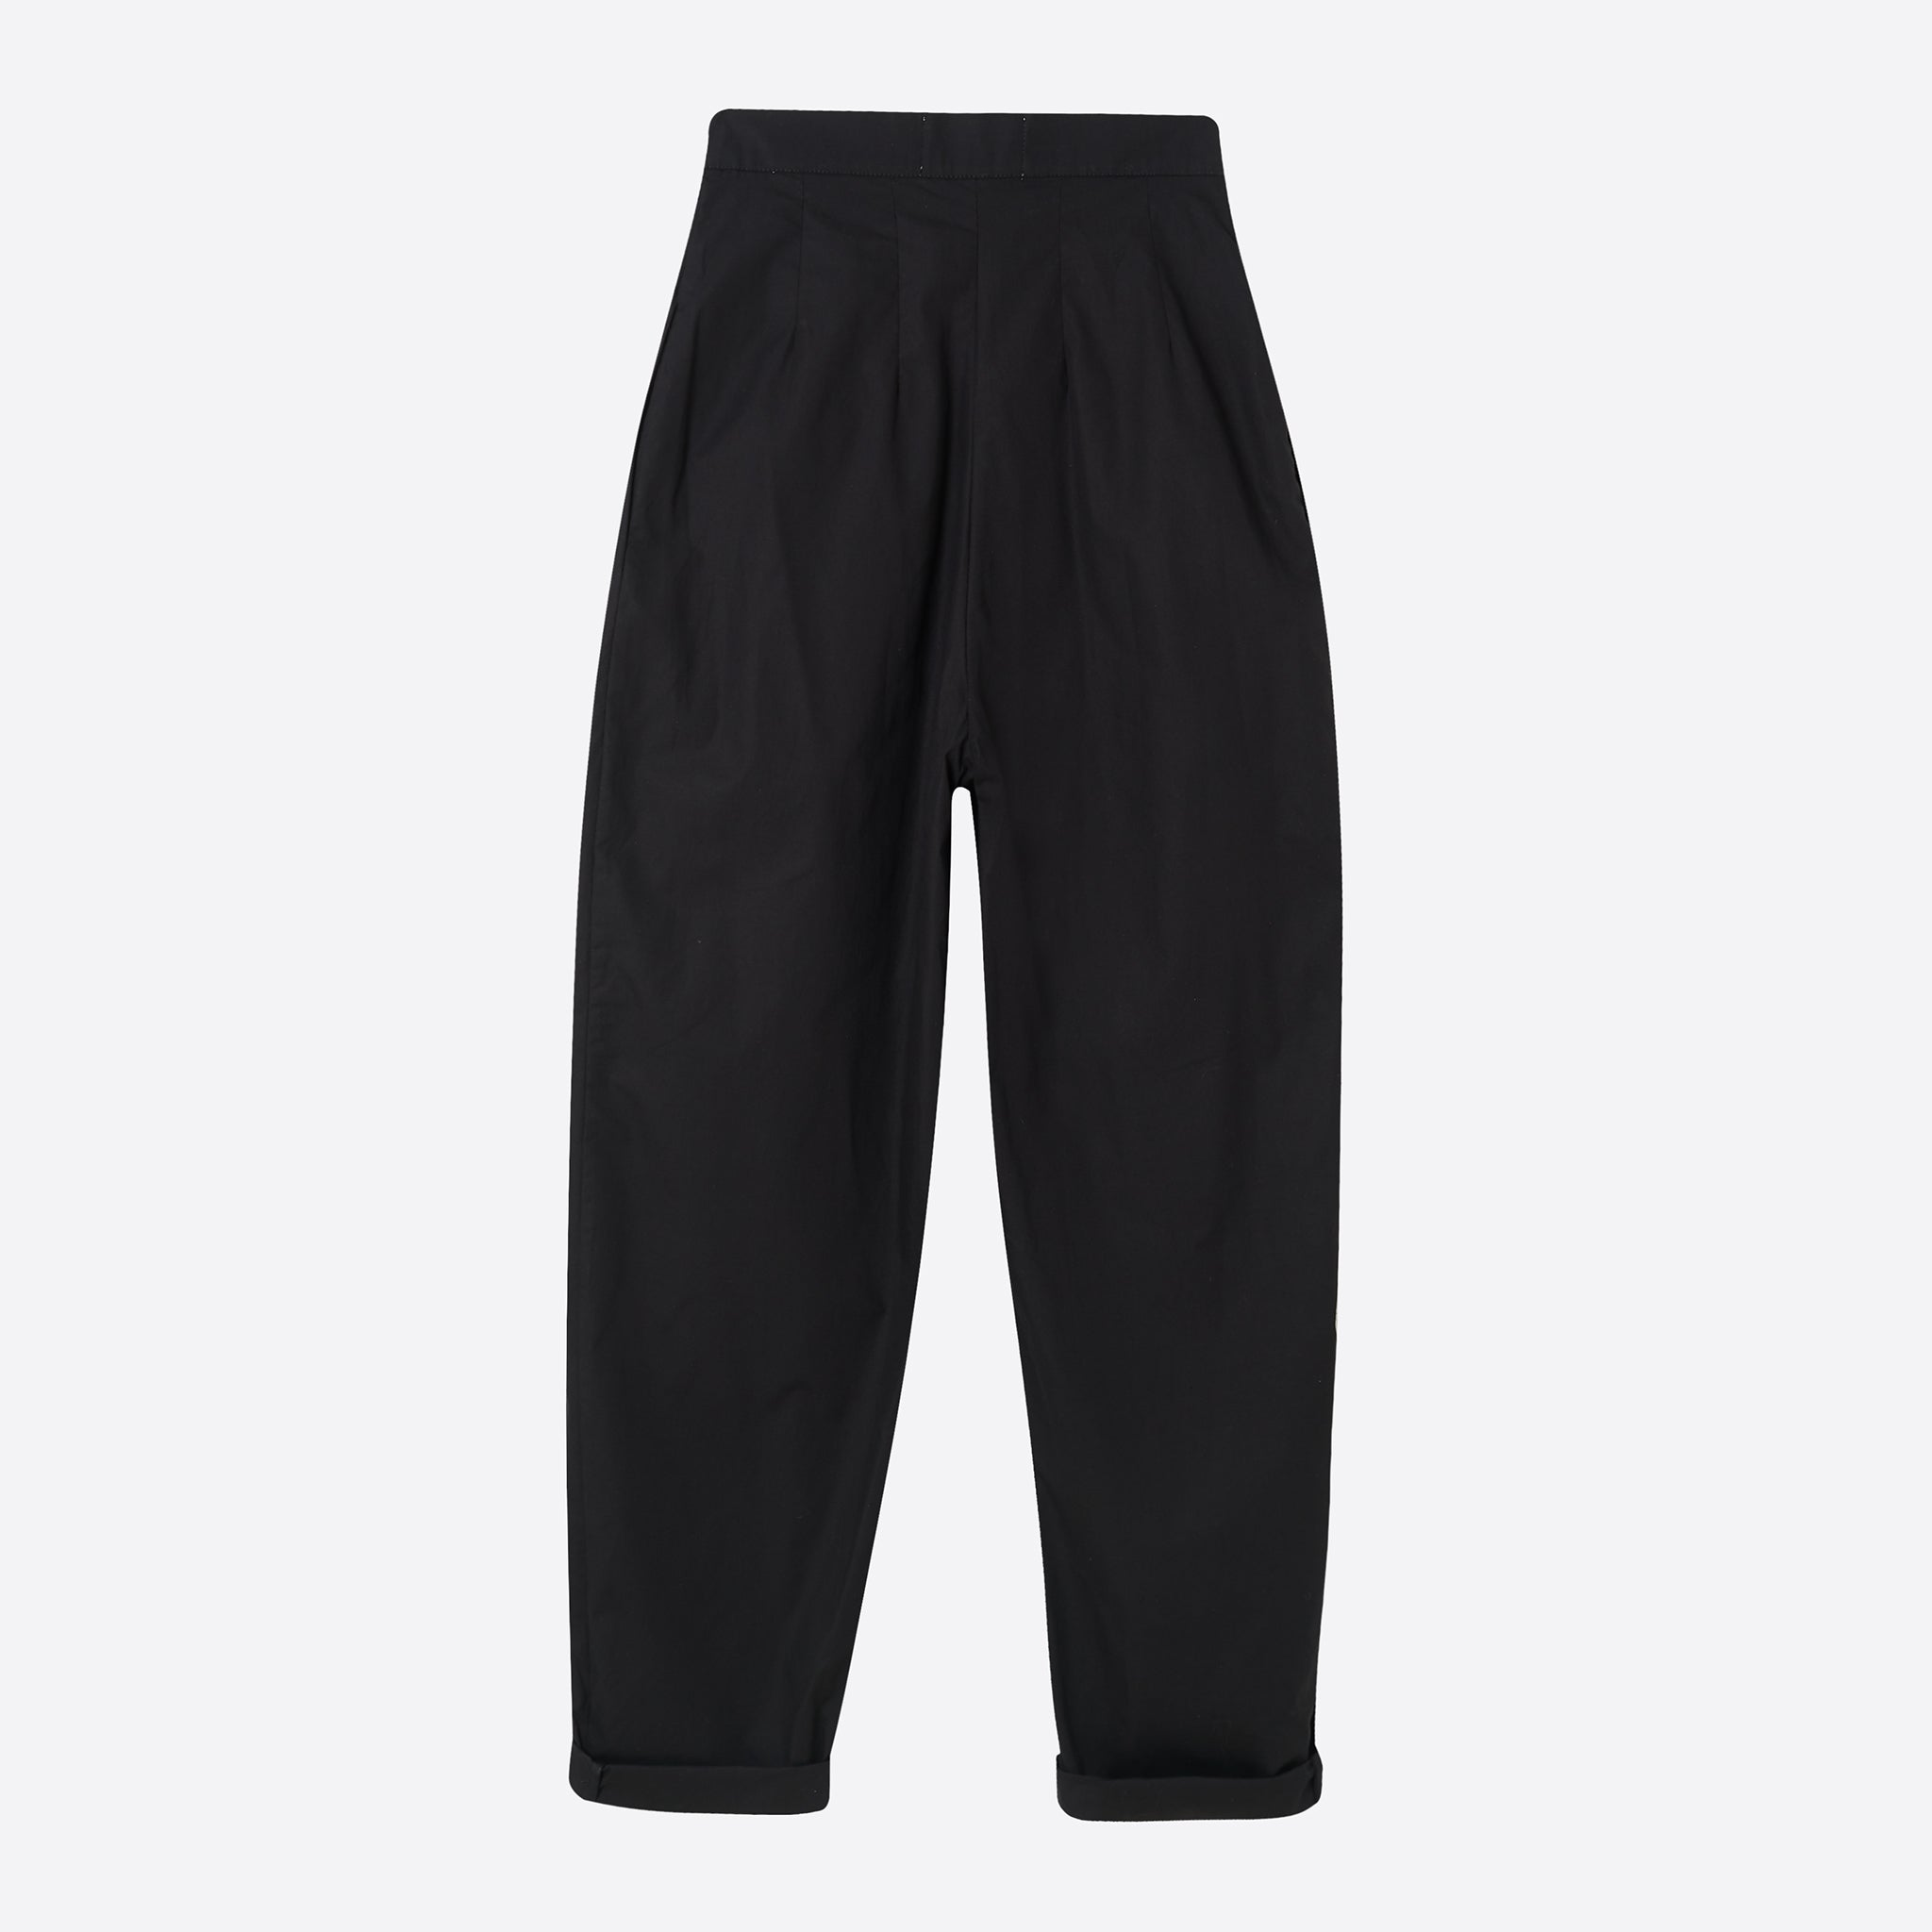 Mr Larkin Babe Pant In Black